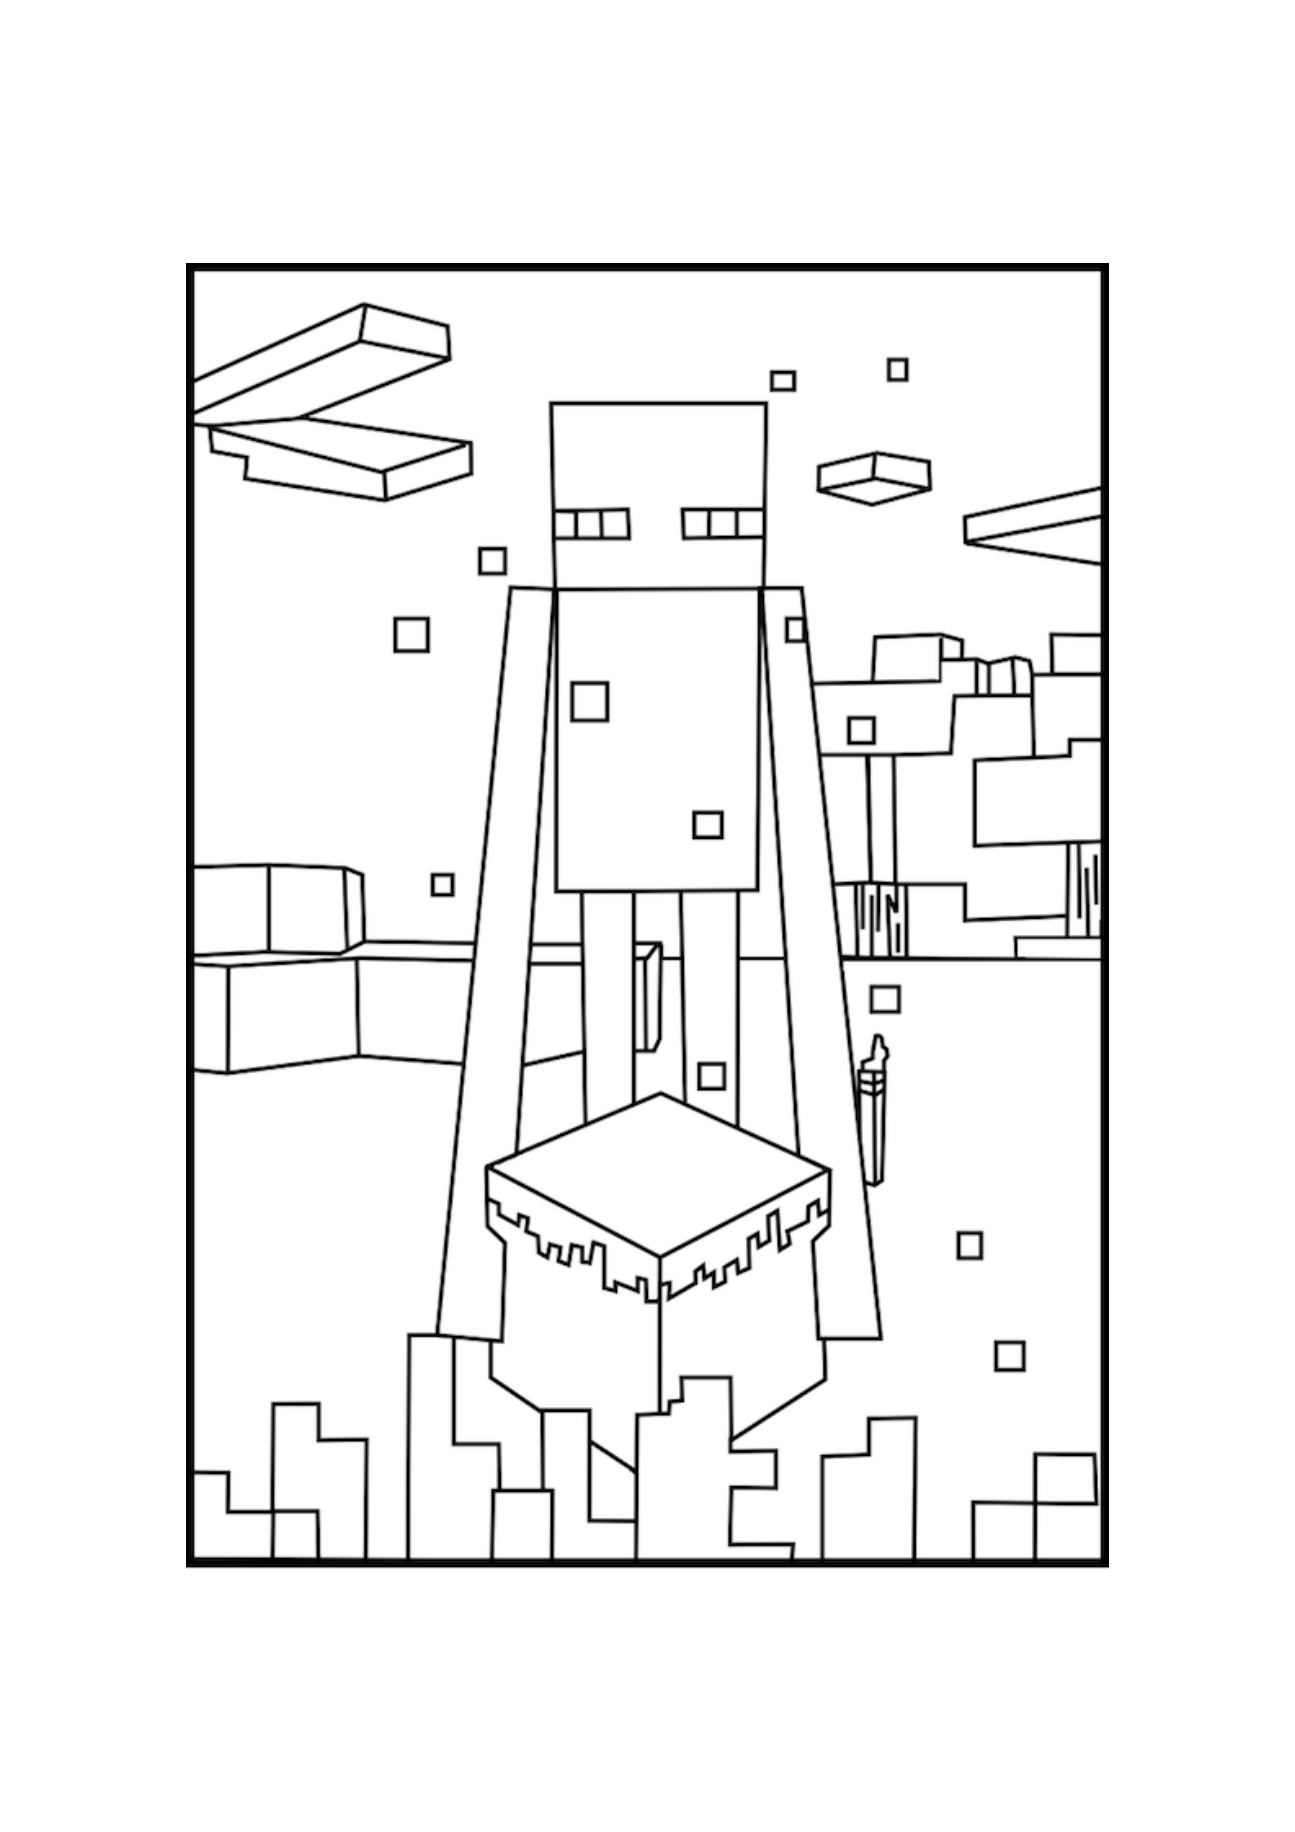 minecraft mansion coloring pages minecraft mansion coloring pages mansion coloring pages minecraft